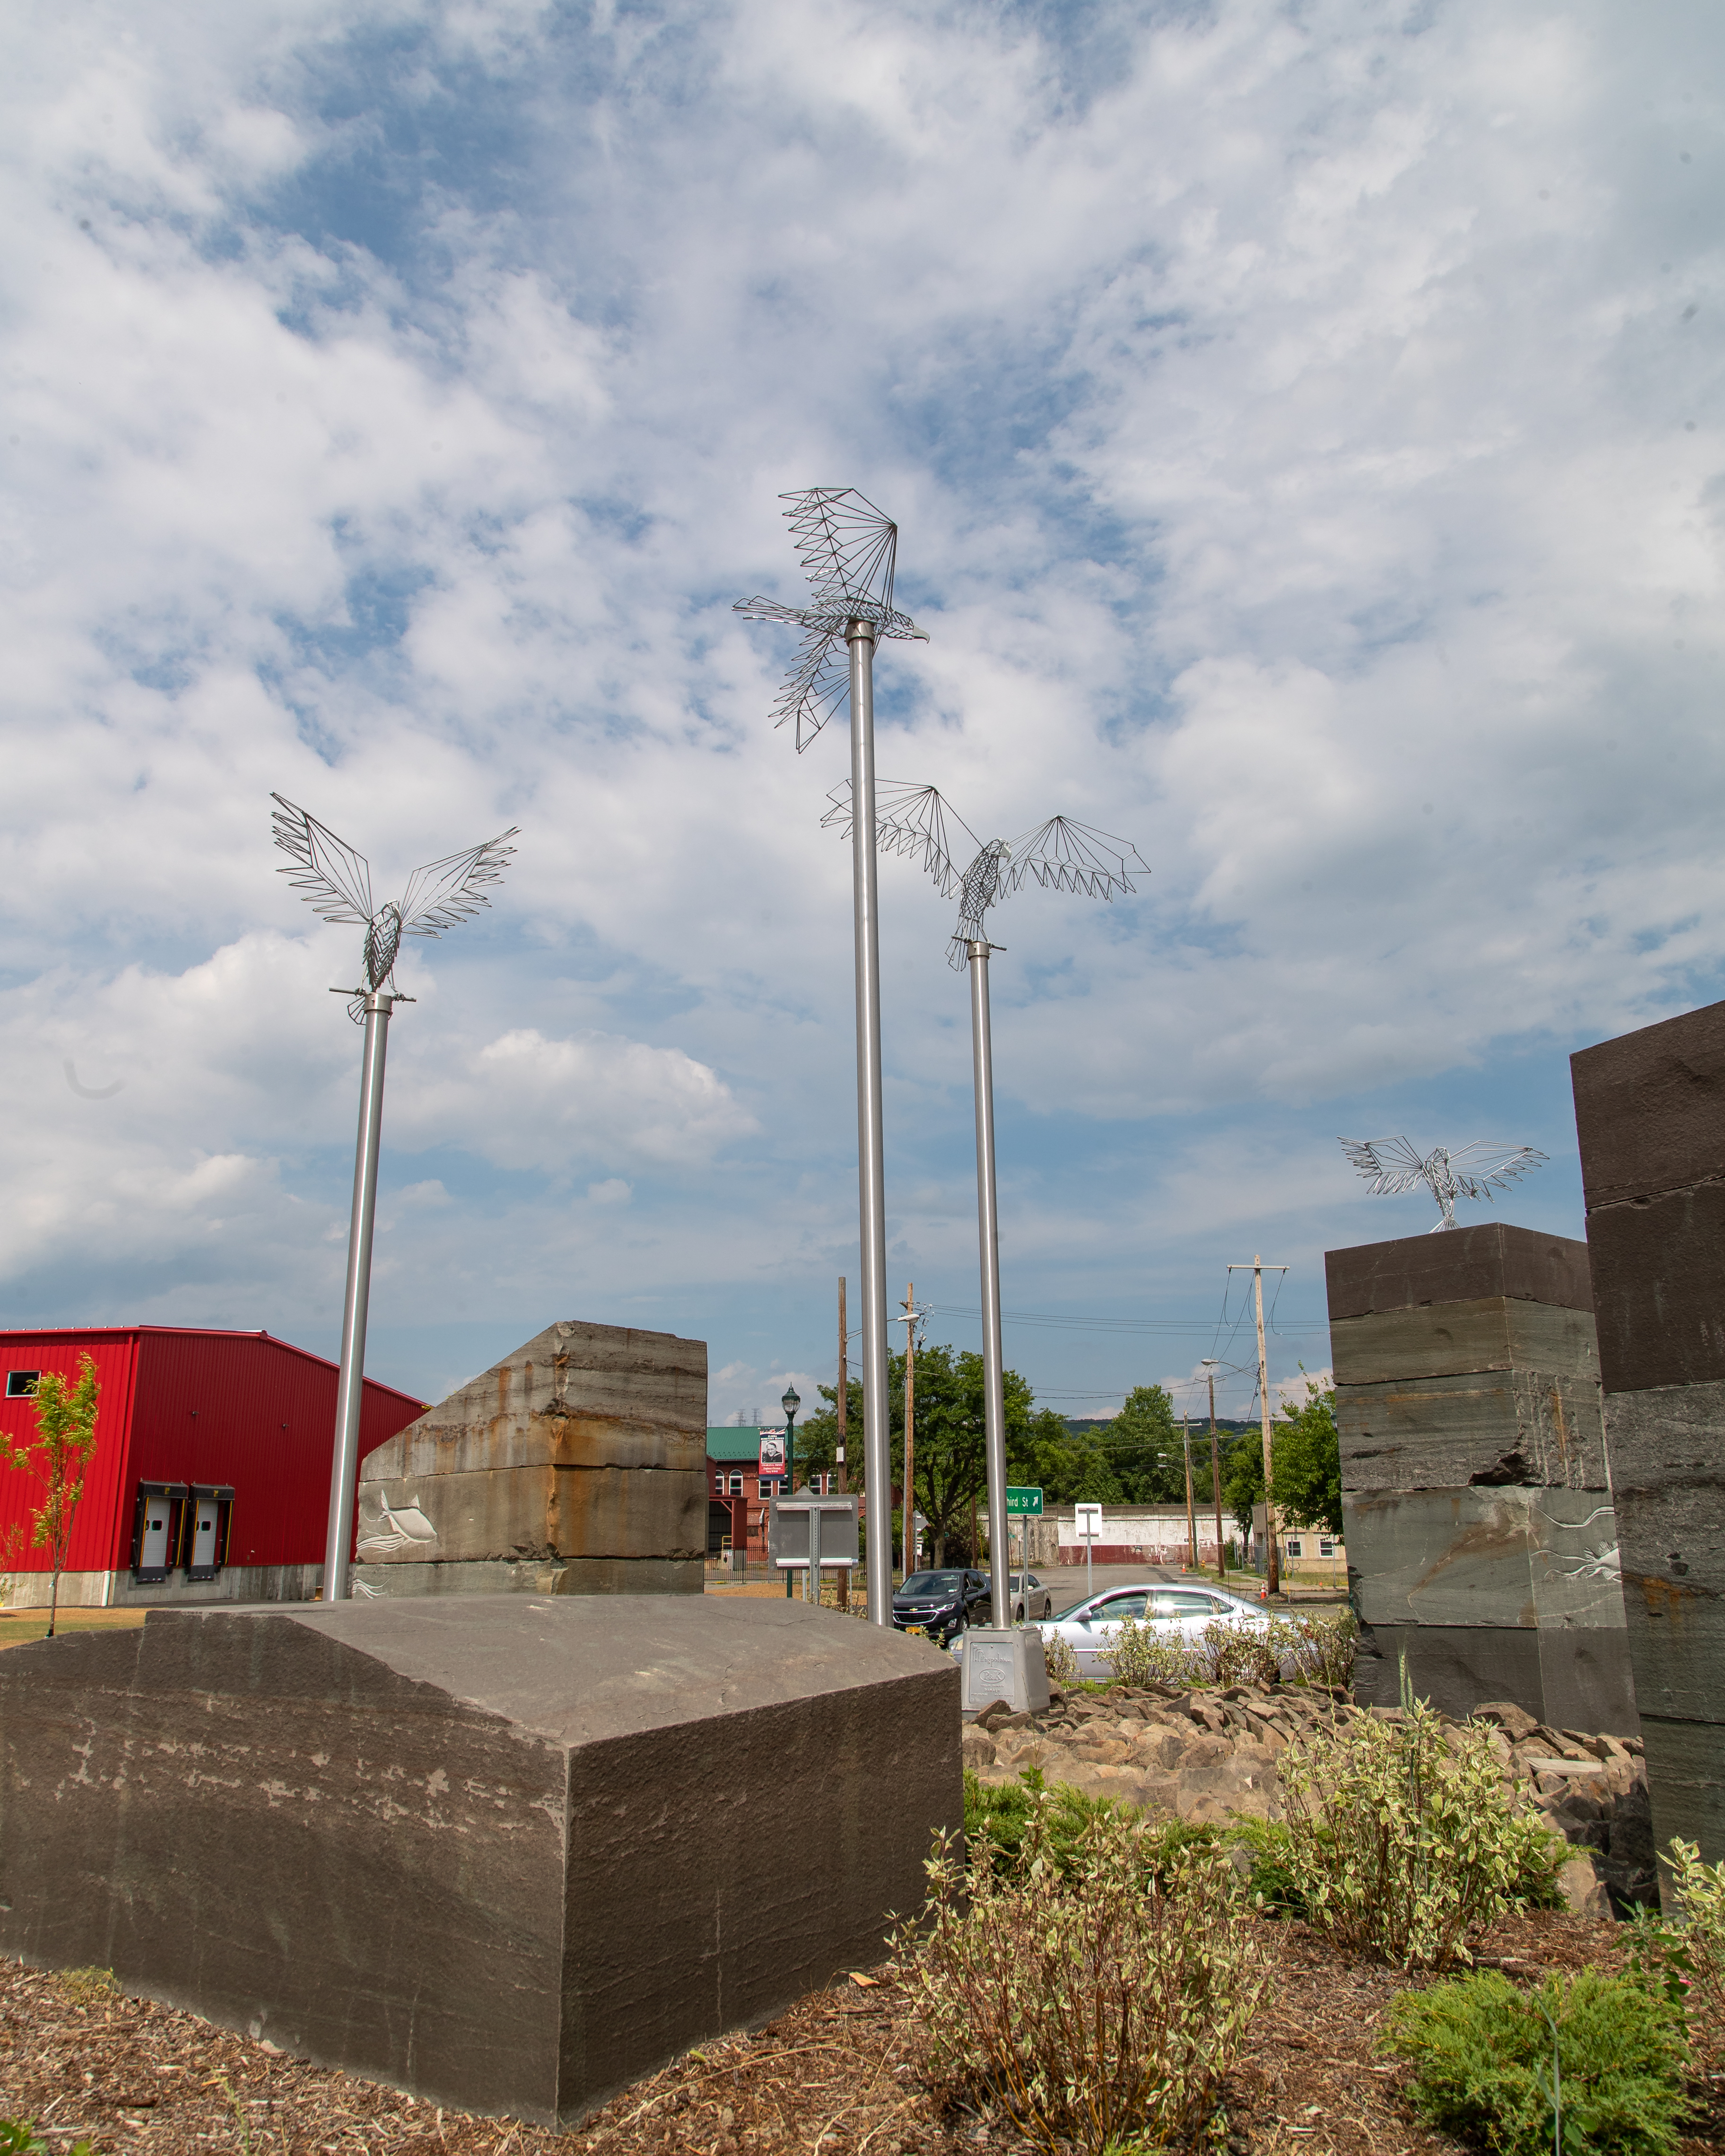 Barbie The Welder eagles and osprey sculptures installed in Elmira, NY